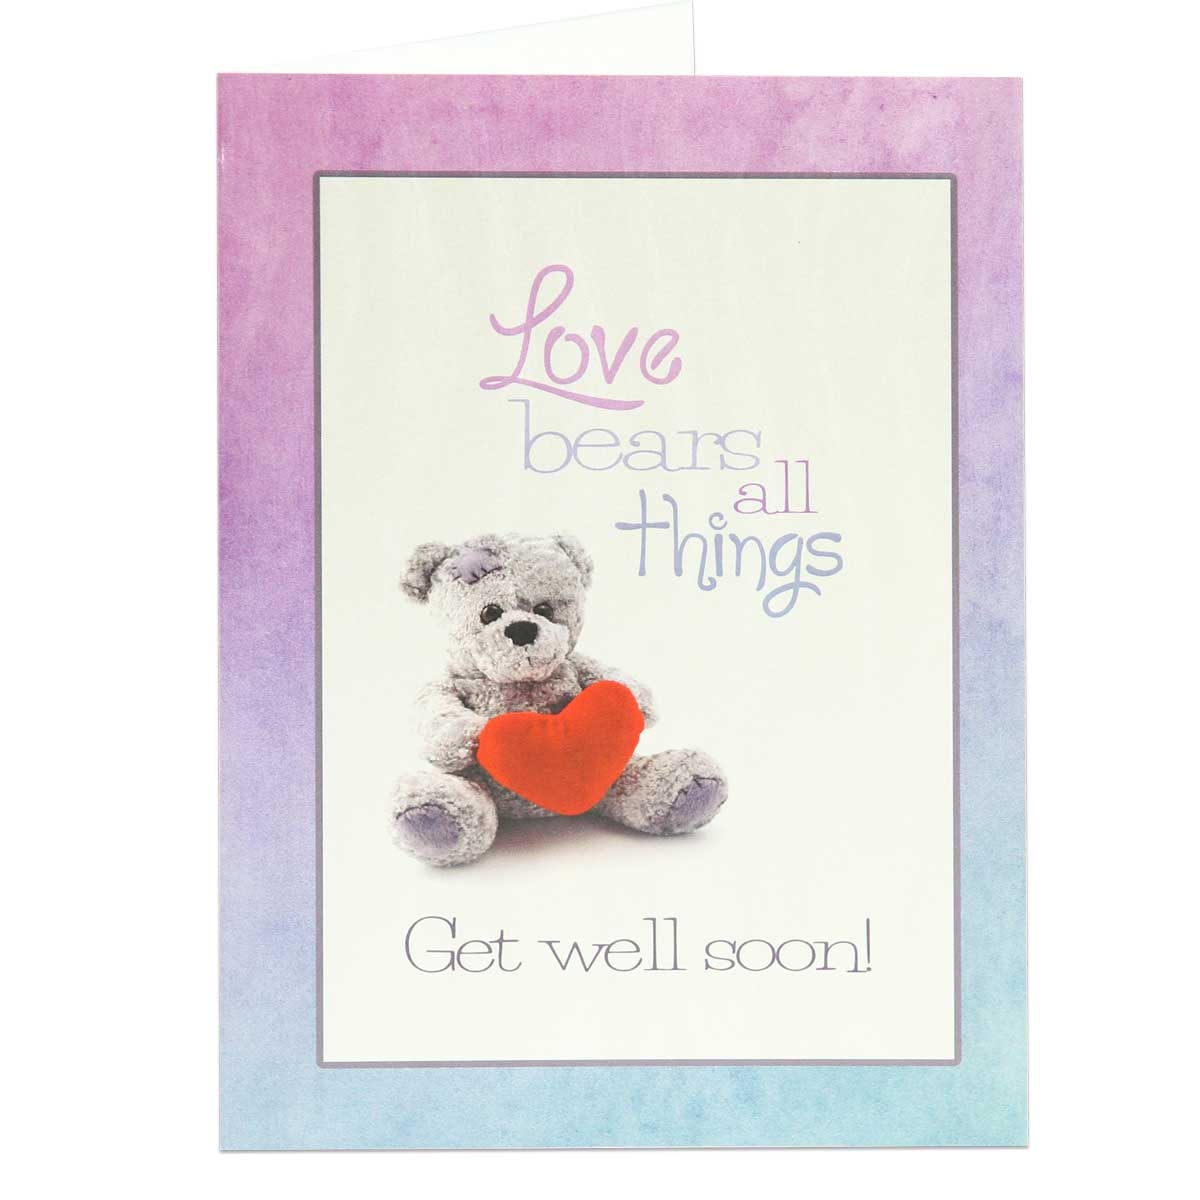 Get well greeting card encouraging get well greeting card get well biblical greeting card based on 1 corinthians 137 view larger photo email m4hsunfo